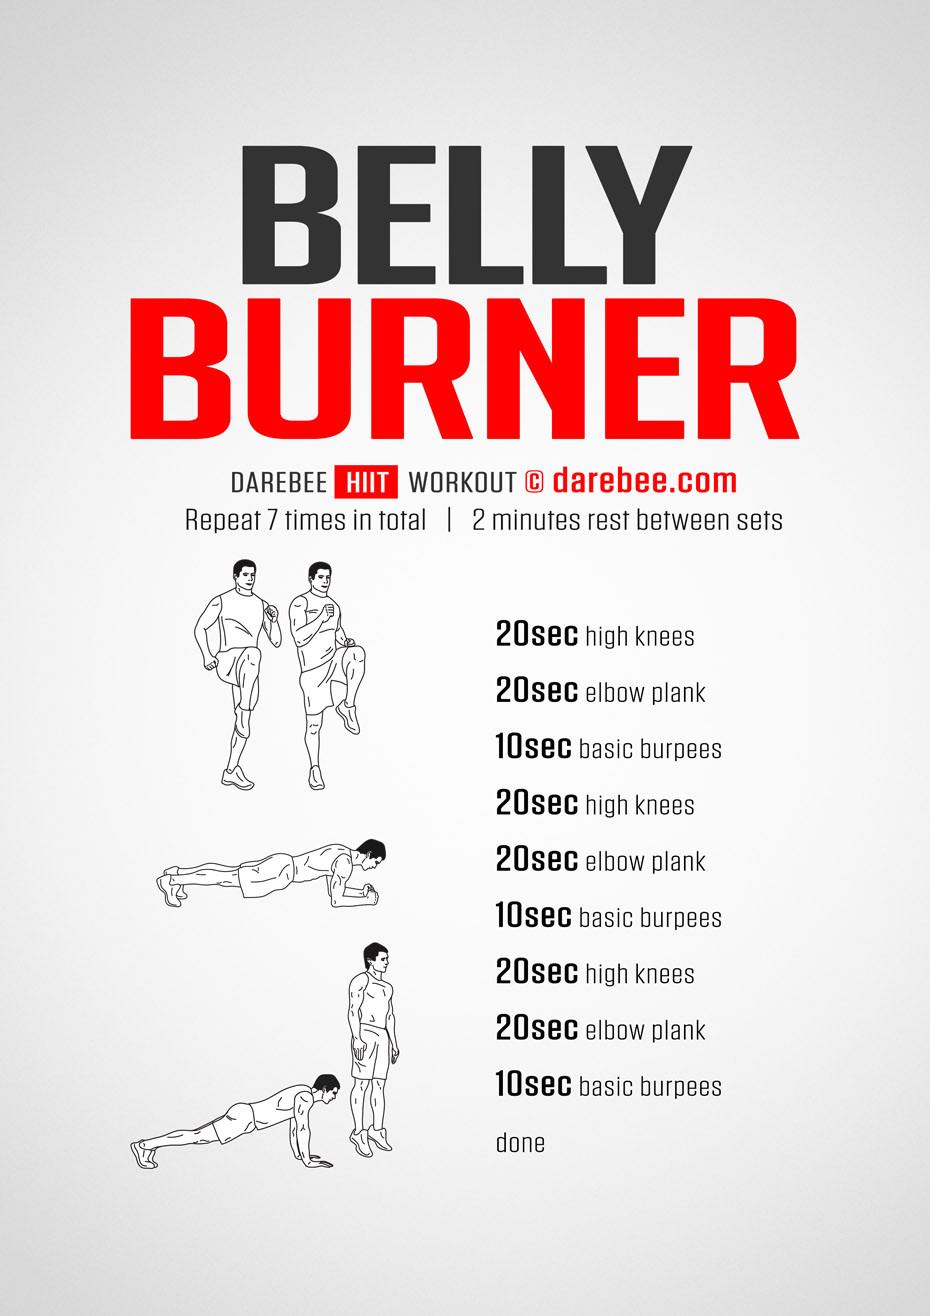 Fat Burning Workout At Home Flat Stomach  Belly Burner Workout